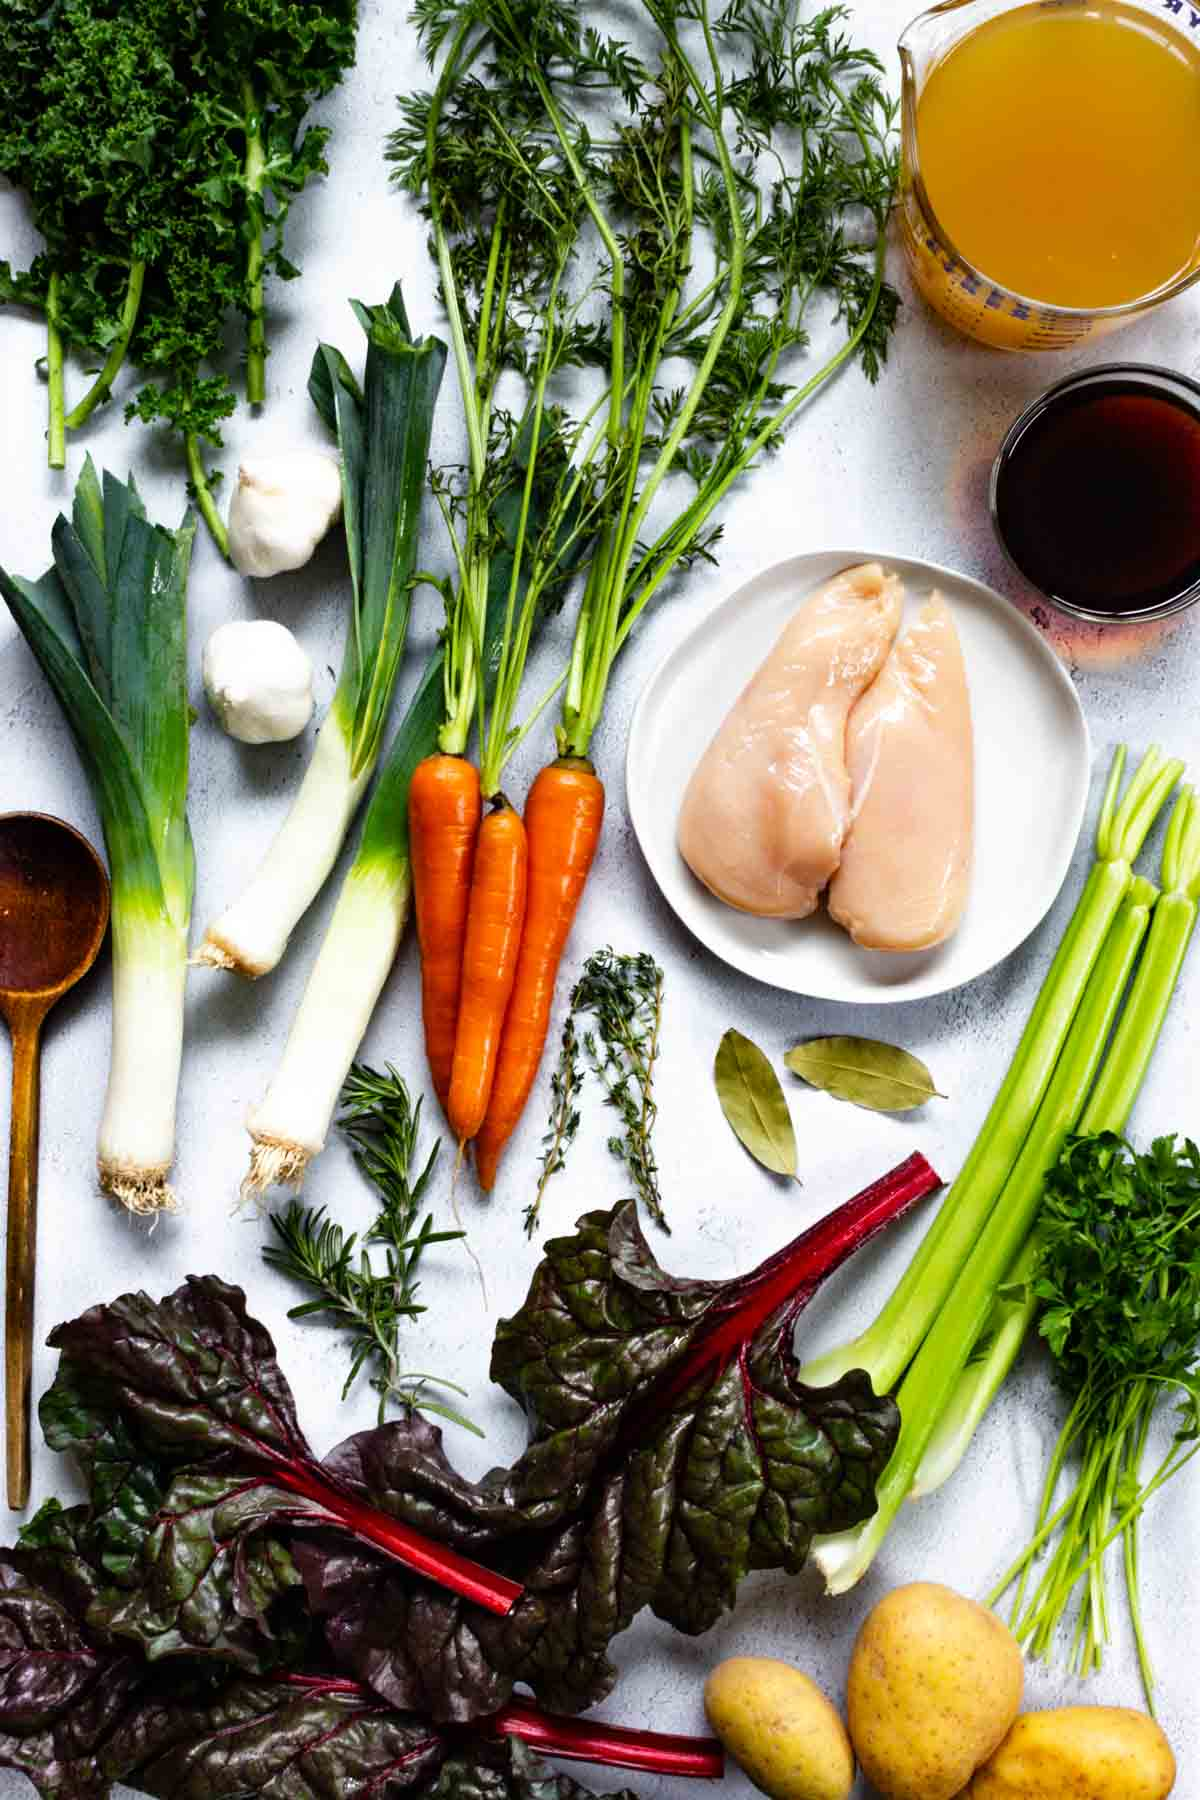 Ingredients for gluten-free flu fighting chicken soup are all laid out on a counter.